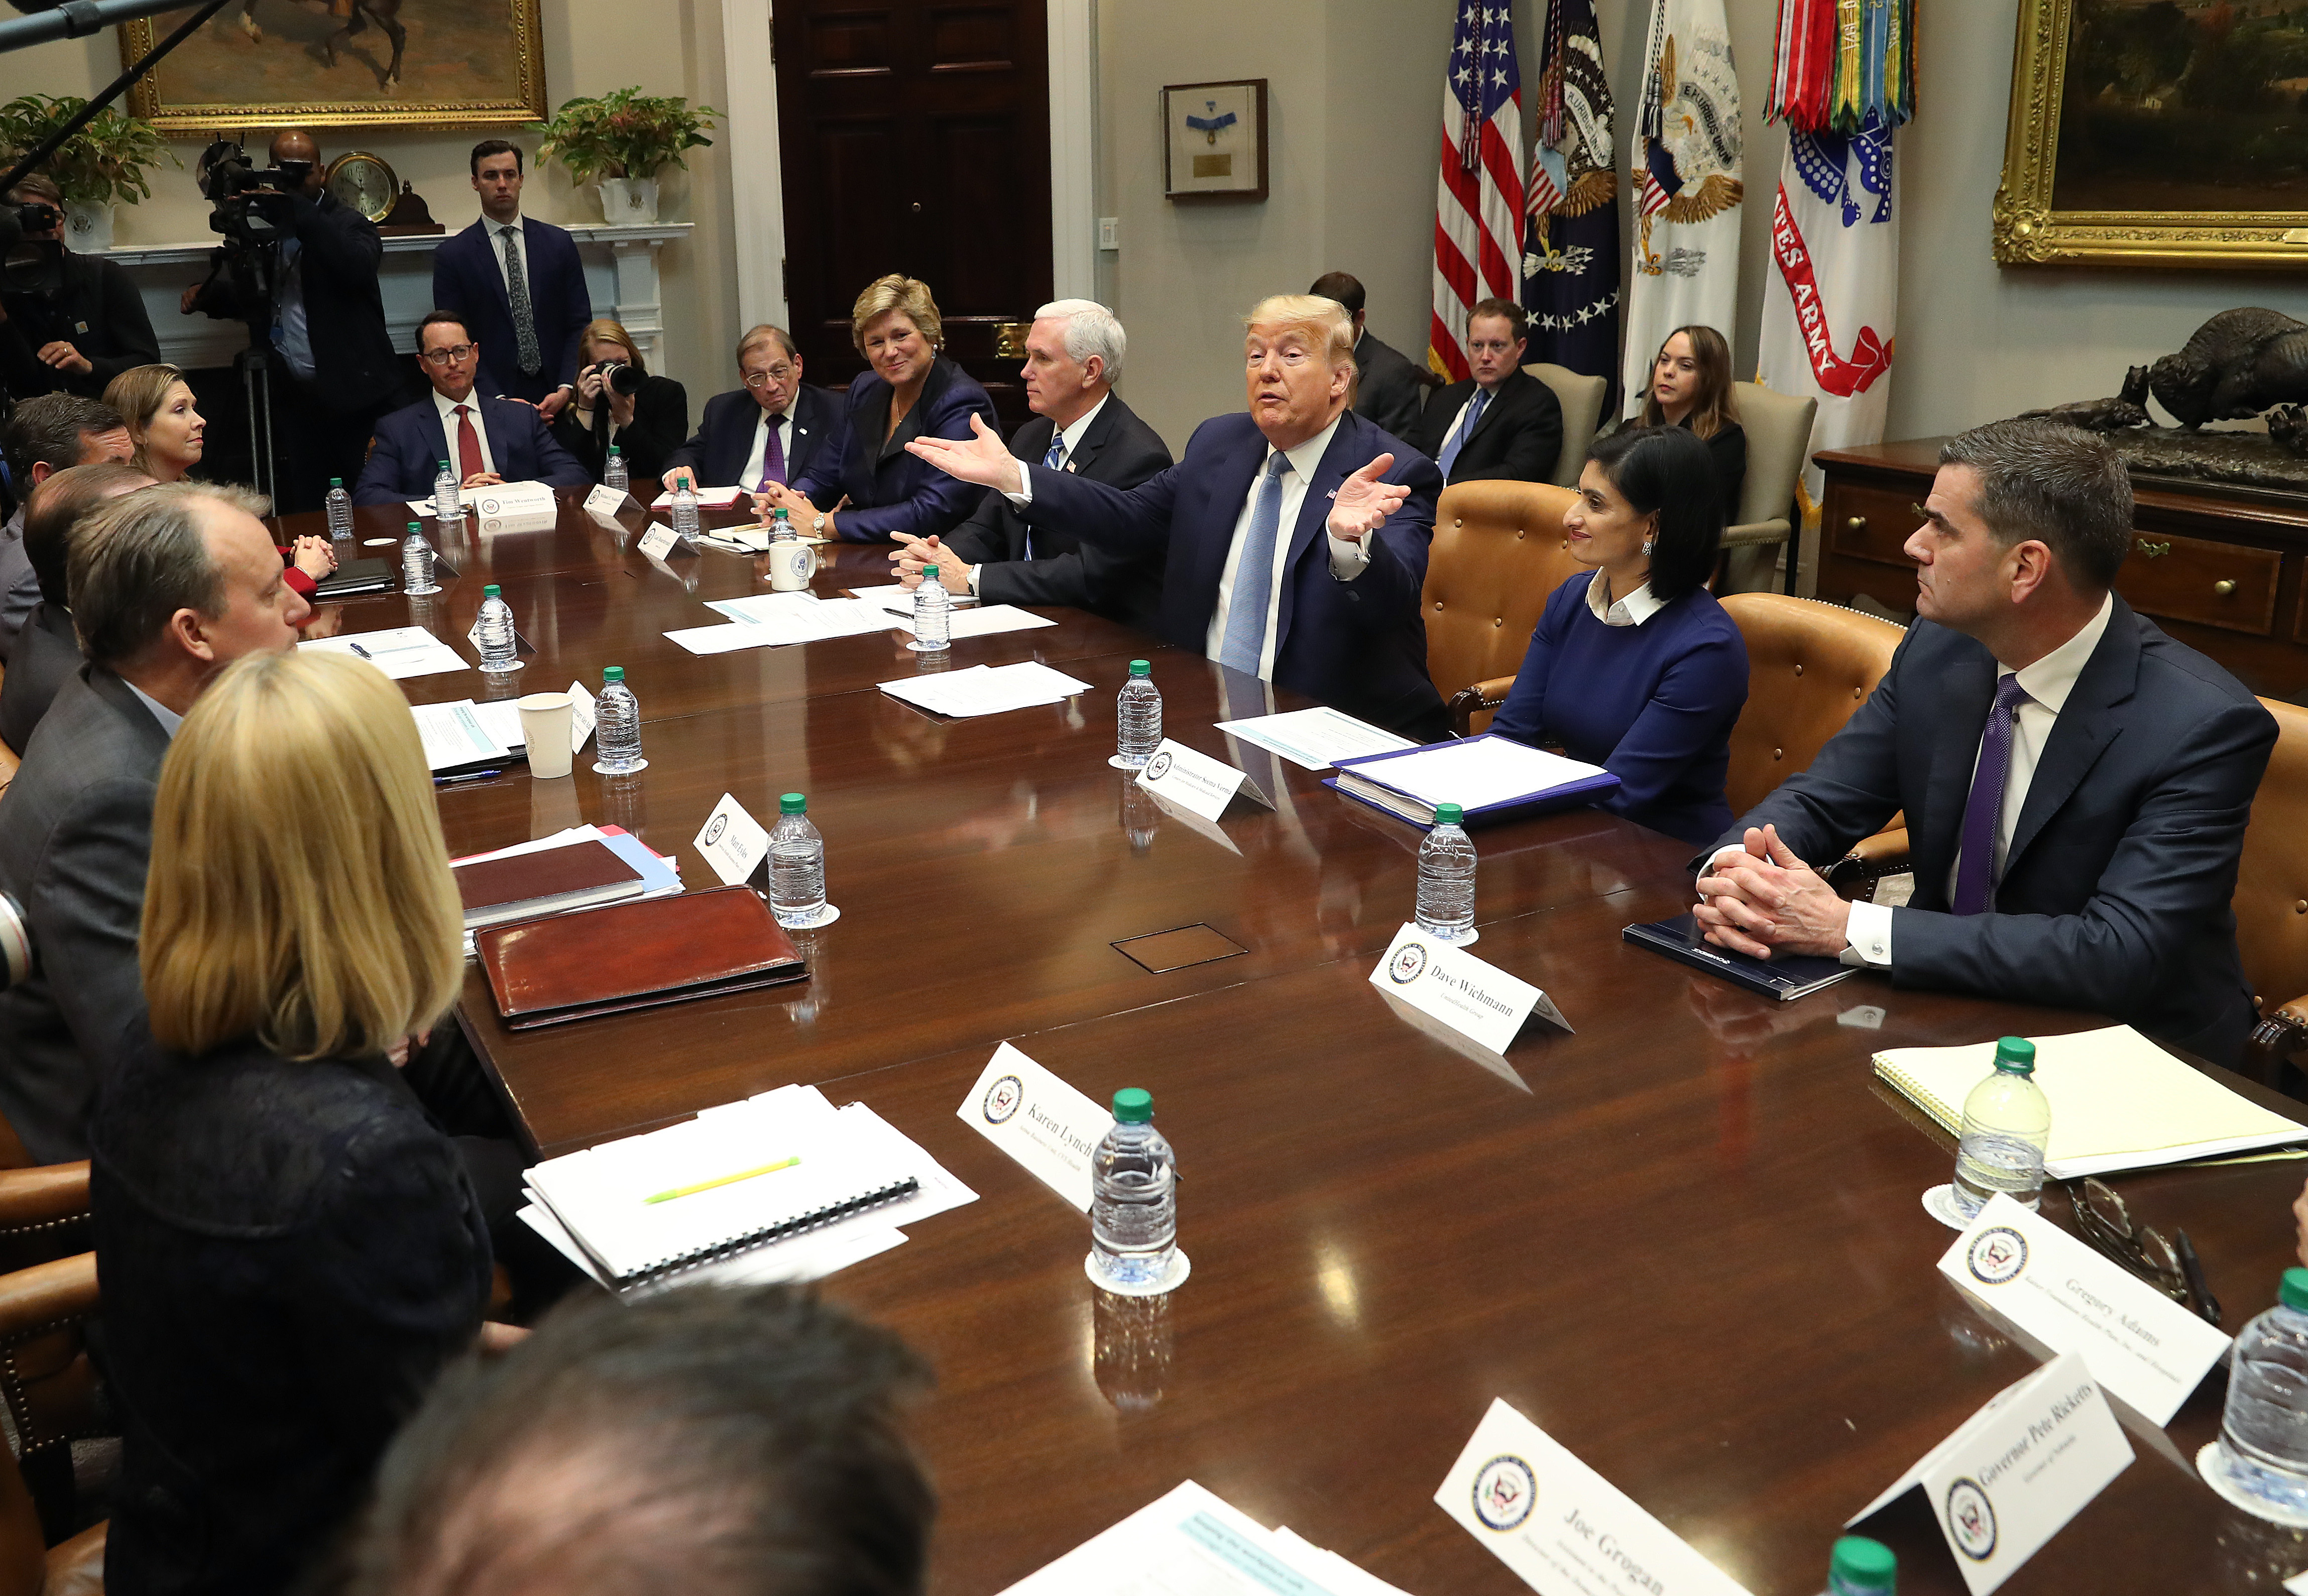 WASHINGTON, DC - MARCH 10: U.S. President Donald Trump and Vice President Mike Pence participate in a coronavirus briefing with health insurers in the Roosevelt Room at the White House, on March 10, 2020 in Washington, DC. (Photo by Mark Wilson/Getty Images)